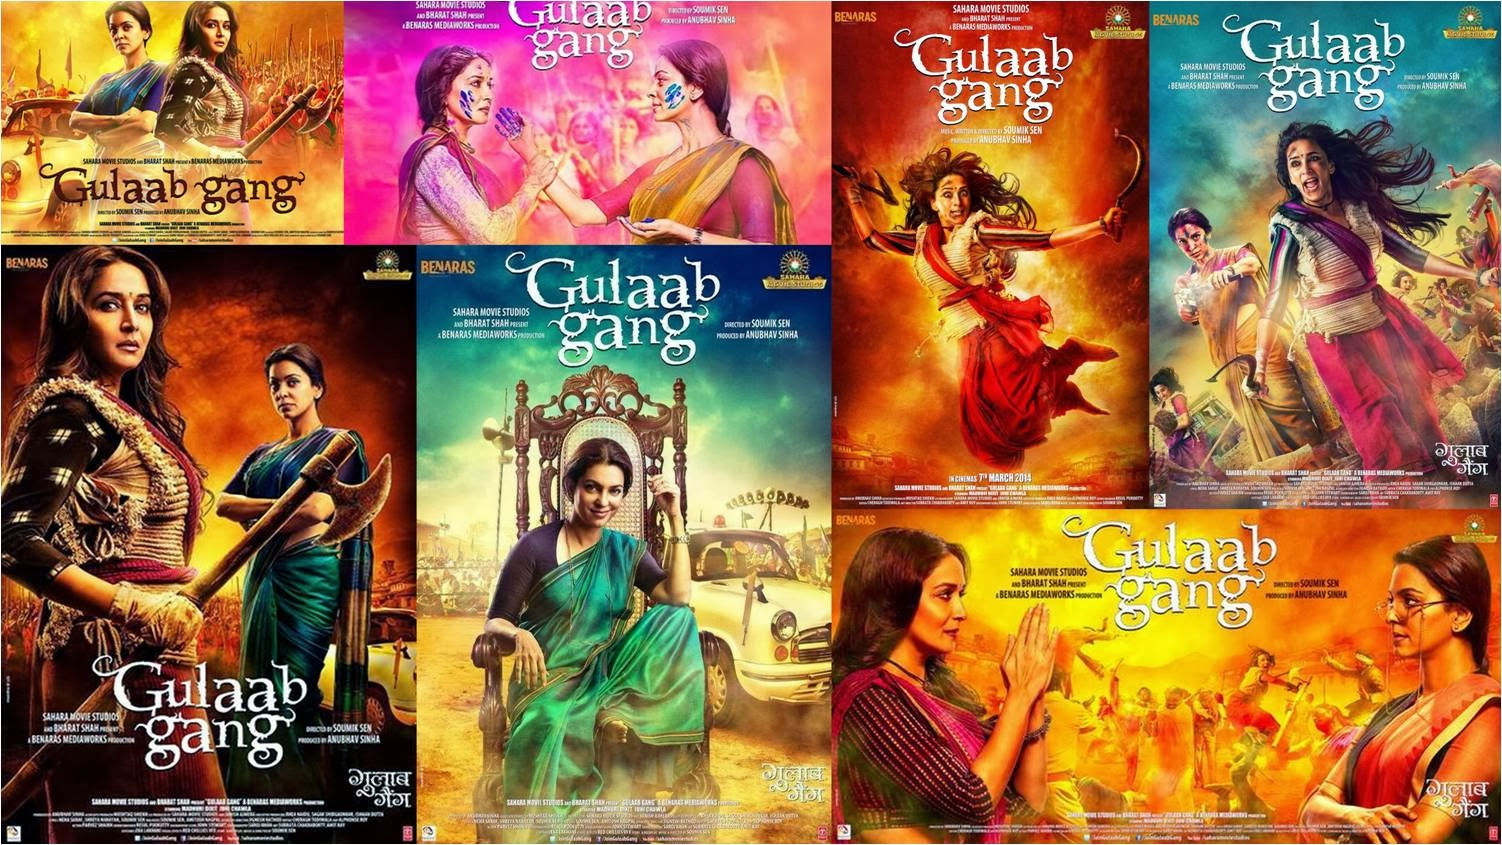 Bright colored official posters of Gulaab Gang movie featuring Madhuri Dixit and Juhi Chawla